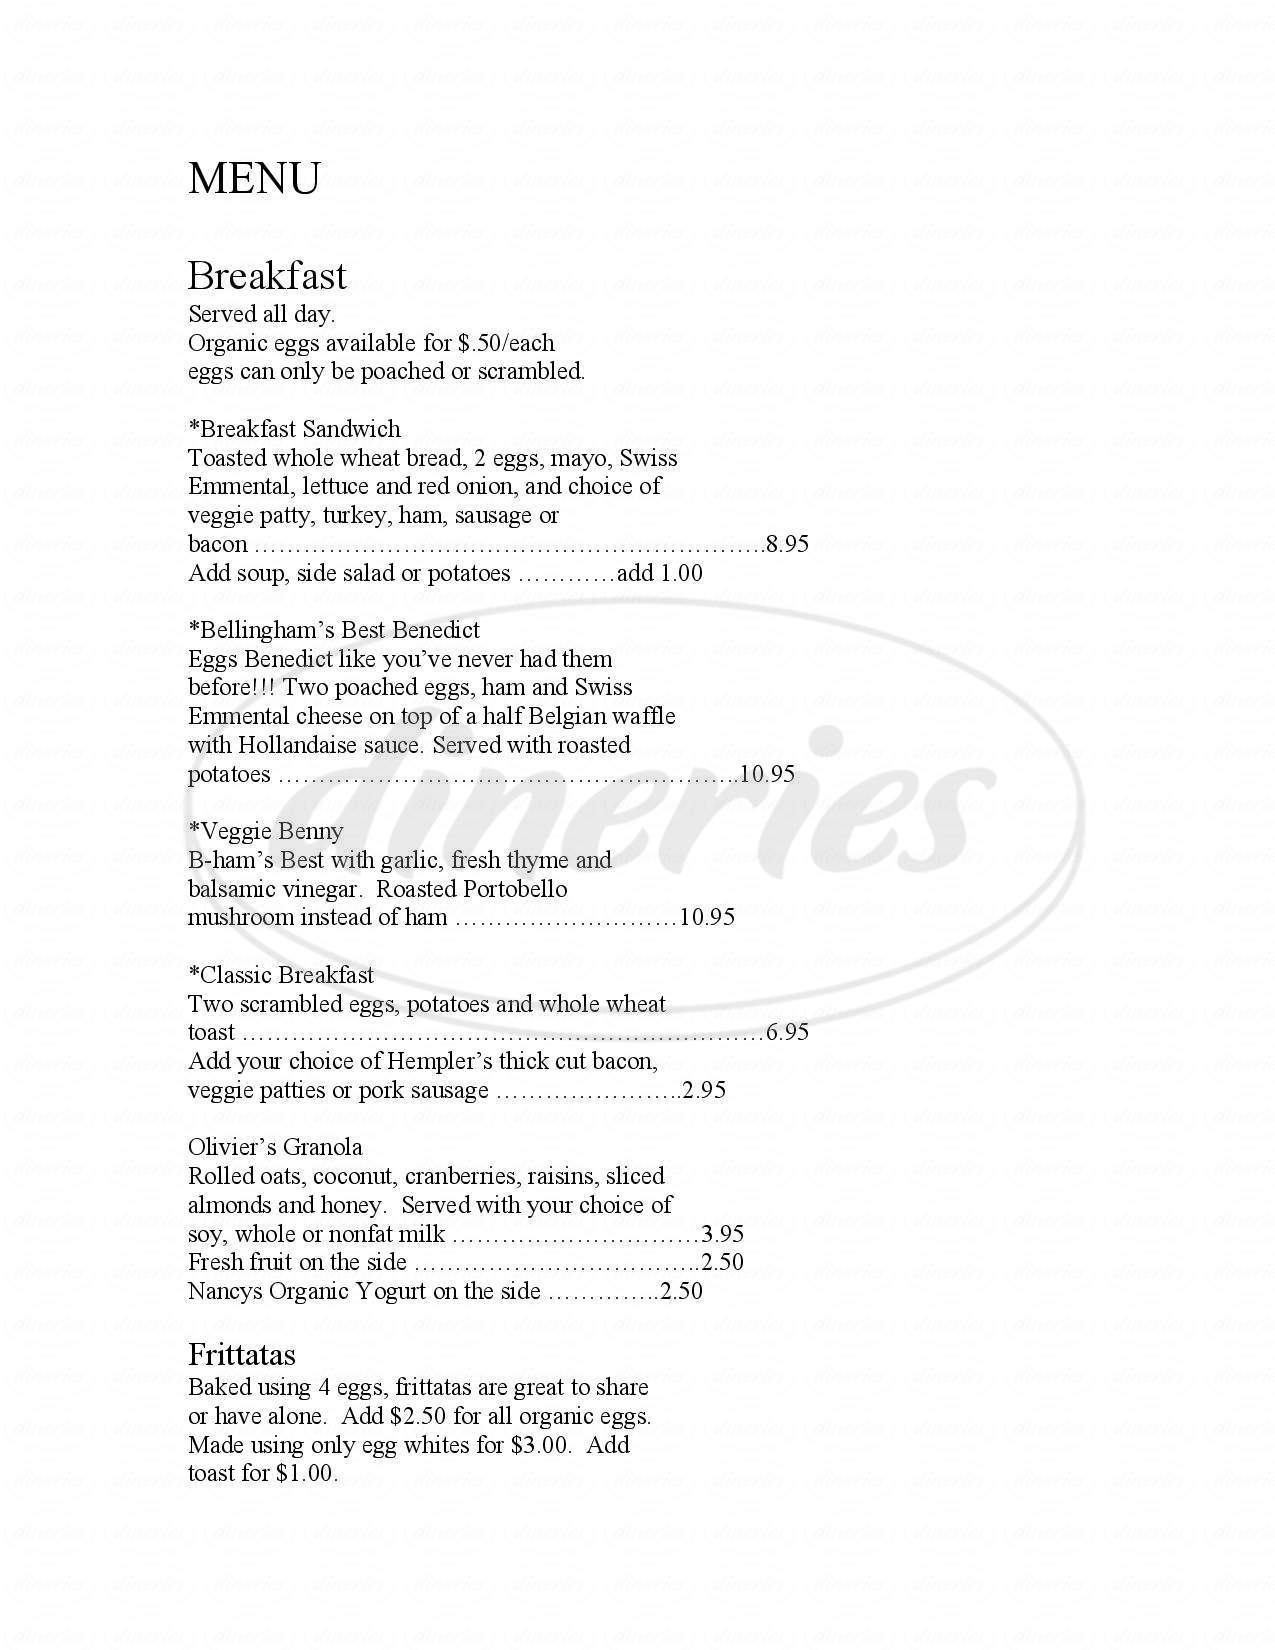 menu for The Mount Bakery Cafe